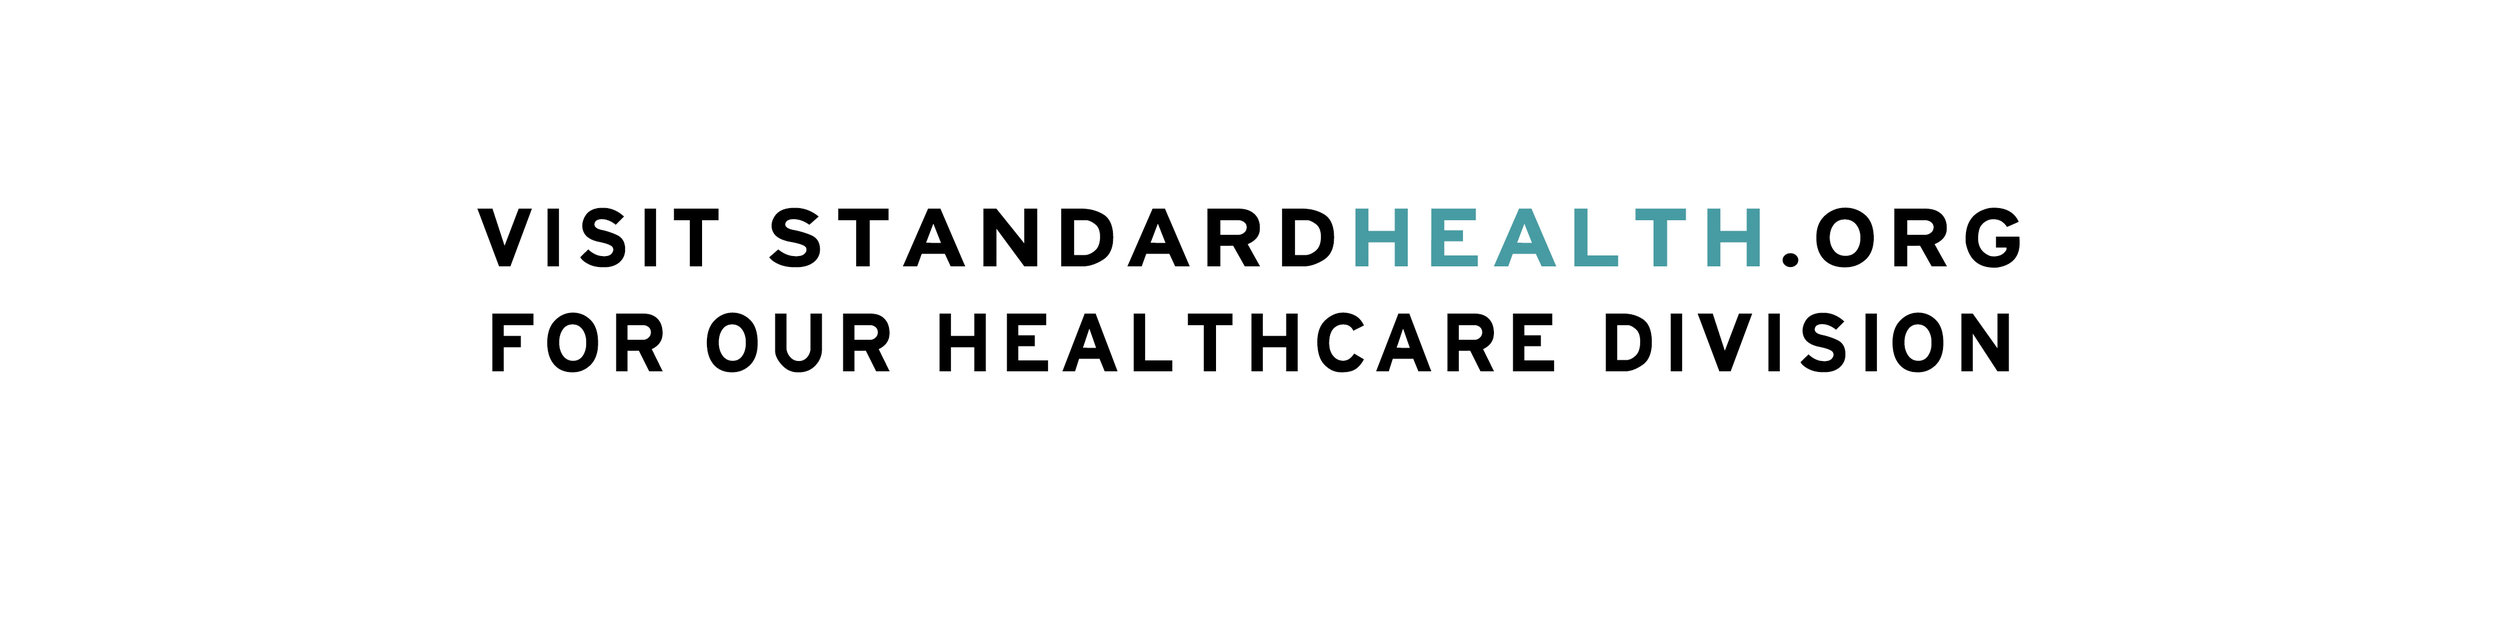 standardhealth2.jpg